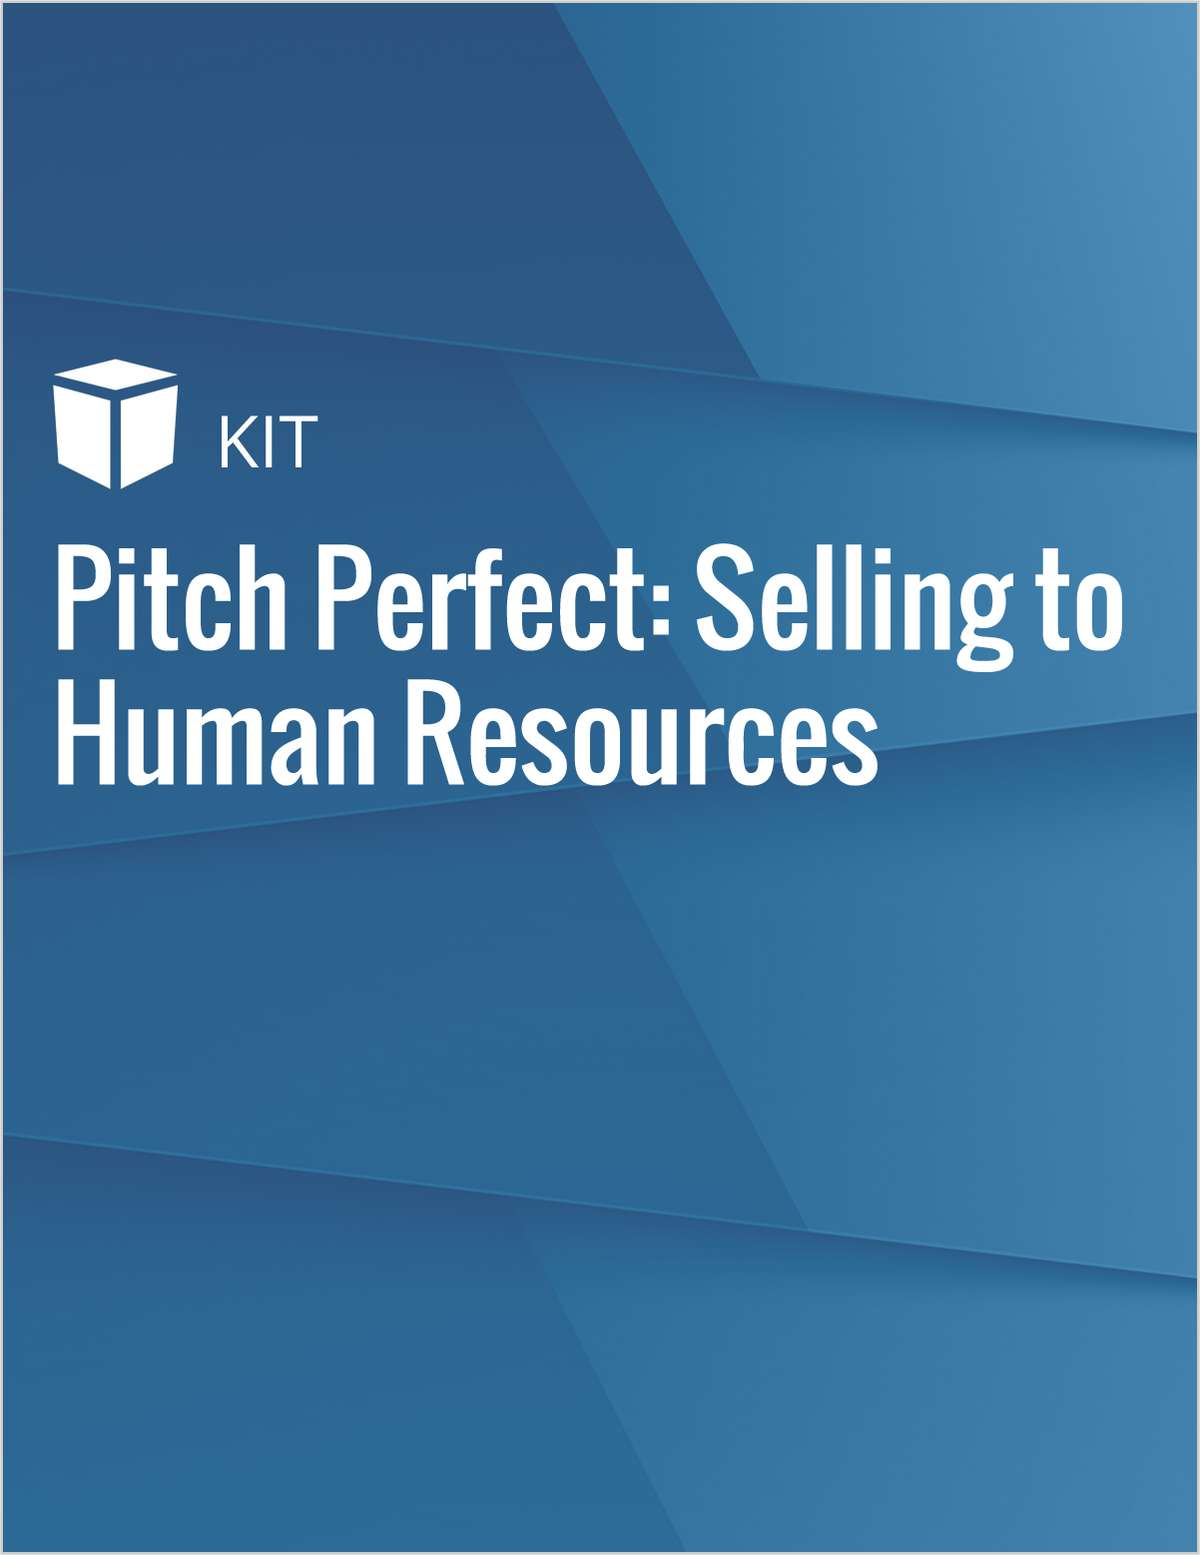 Pitch Perfect: Selling to Human Resources